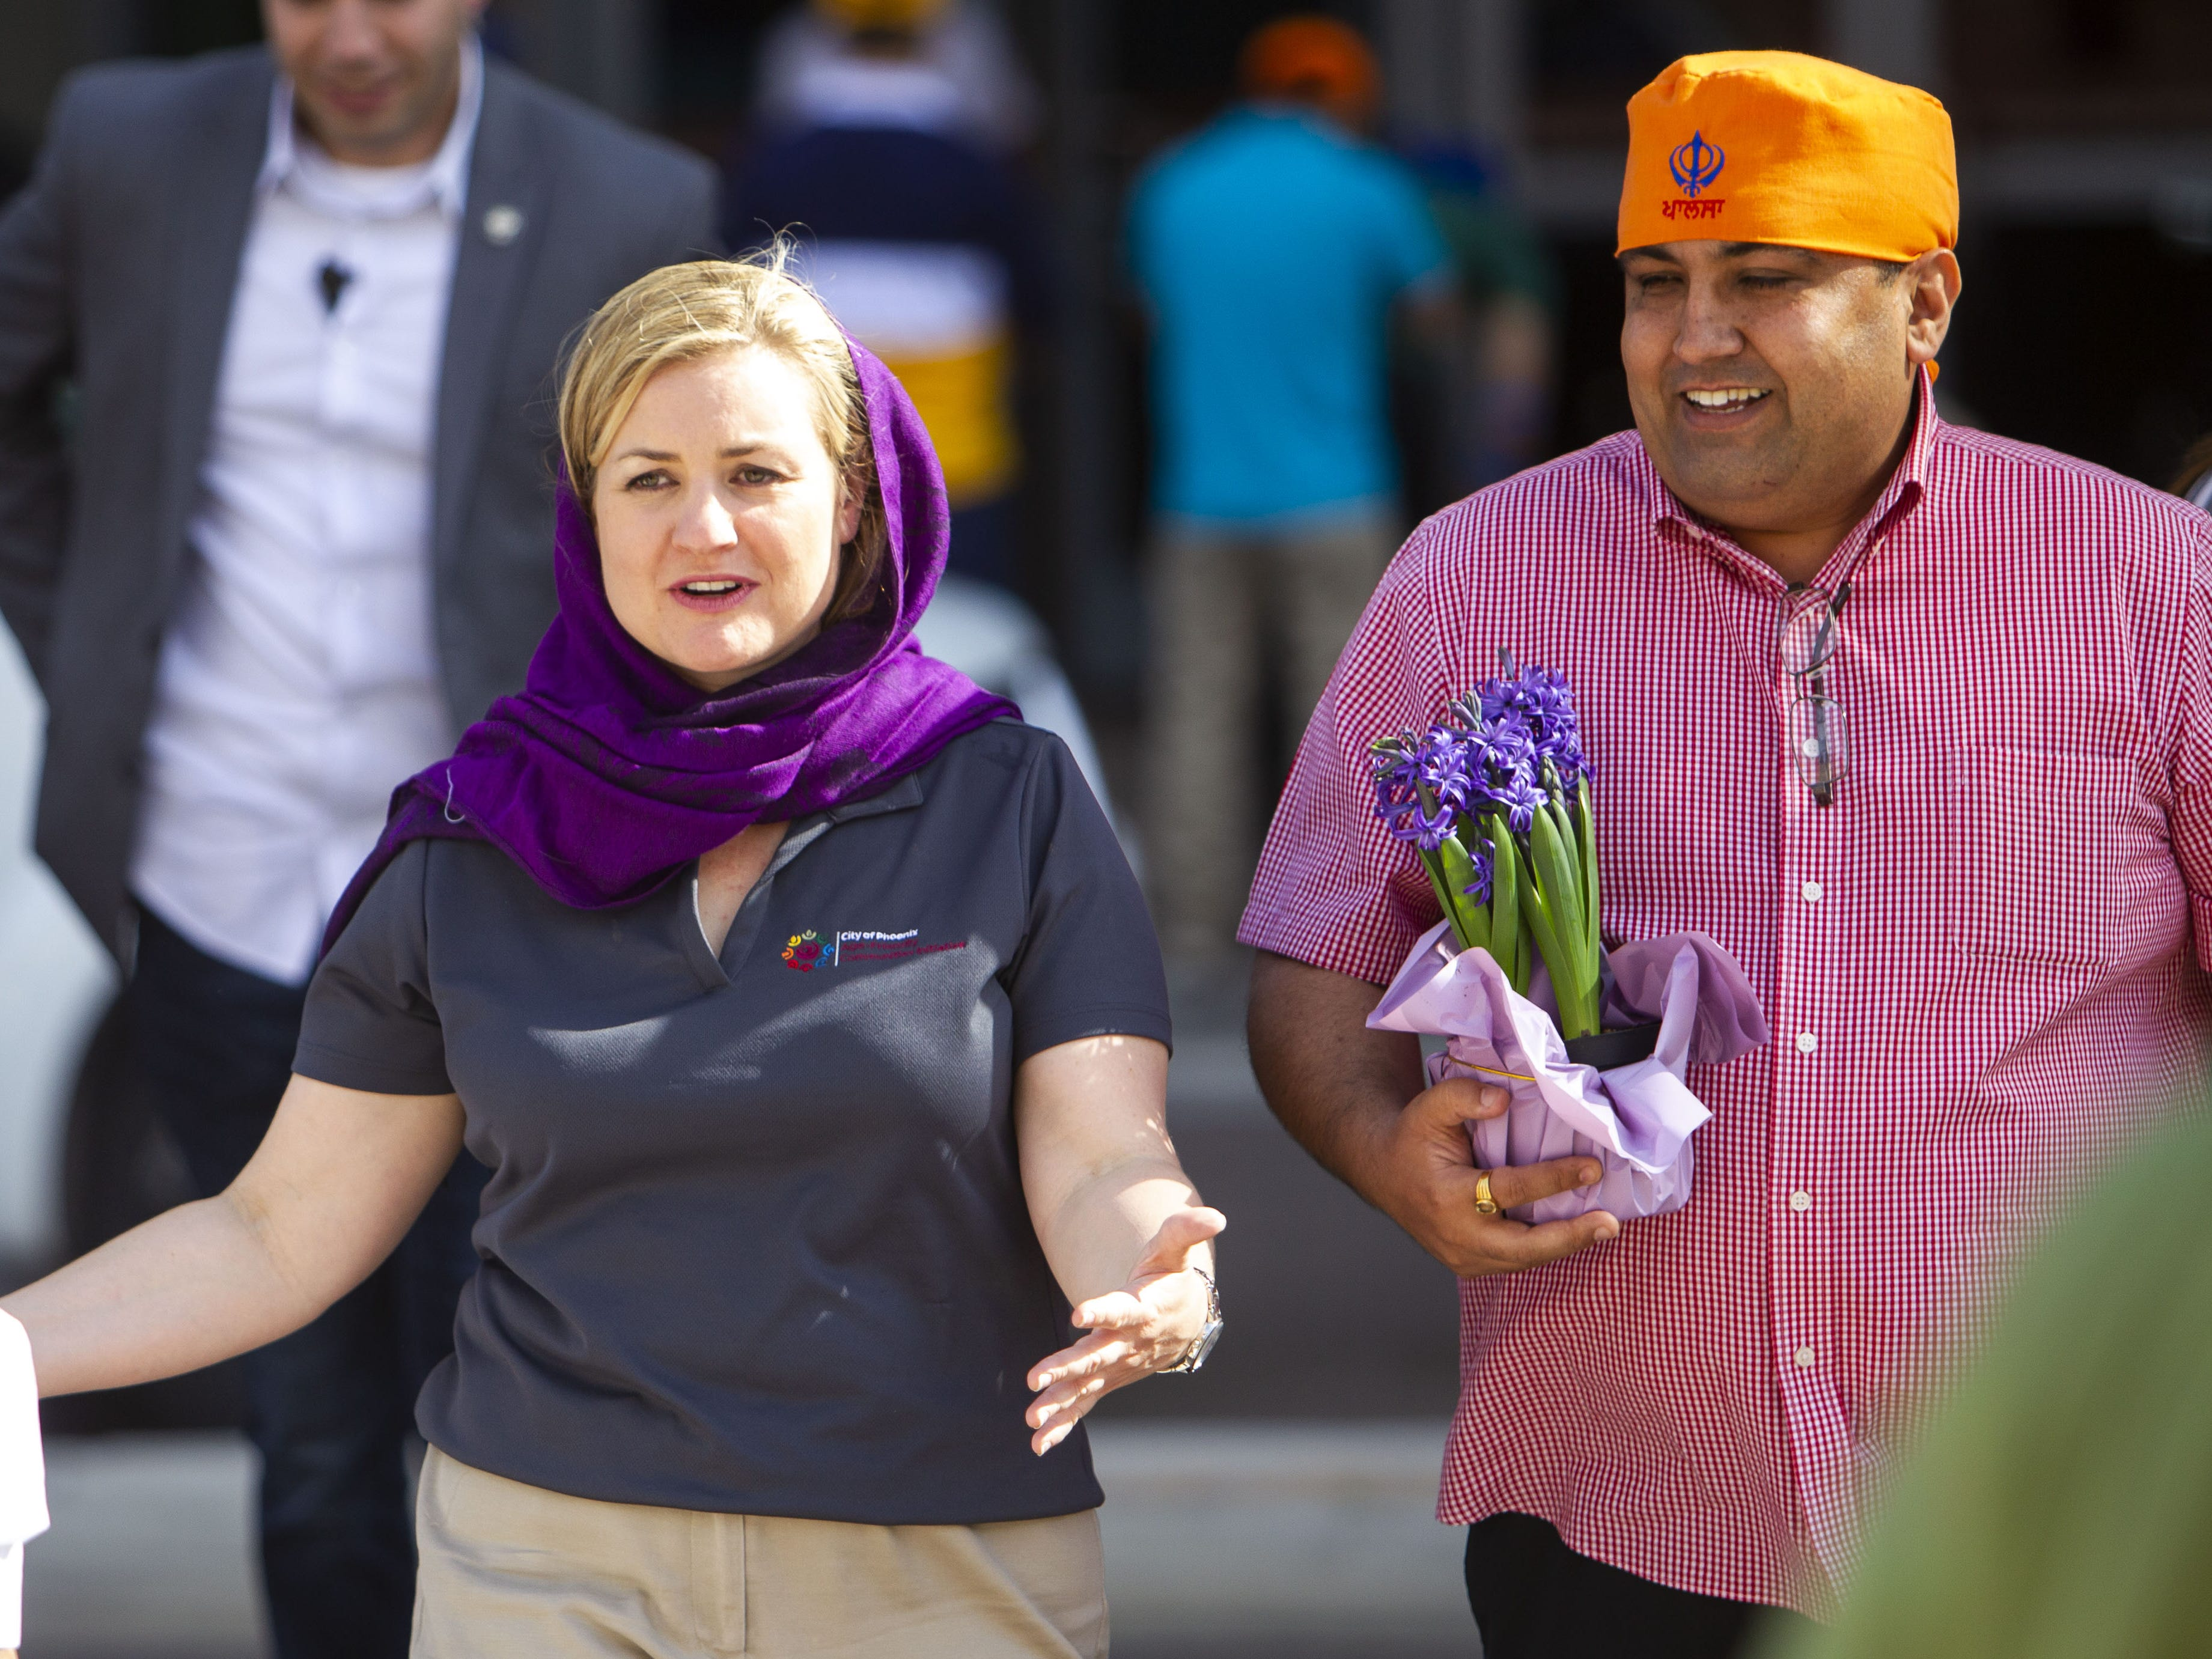 Phoenix Mayor Kate Gallego walks with Dr. Vishal Verma, right, after speaking in the Phoenix Convention Center on March 24, 2019.